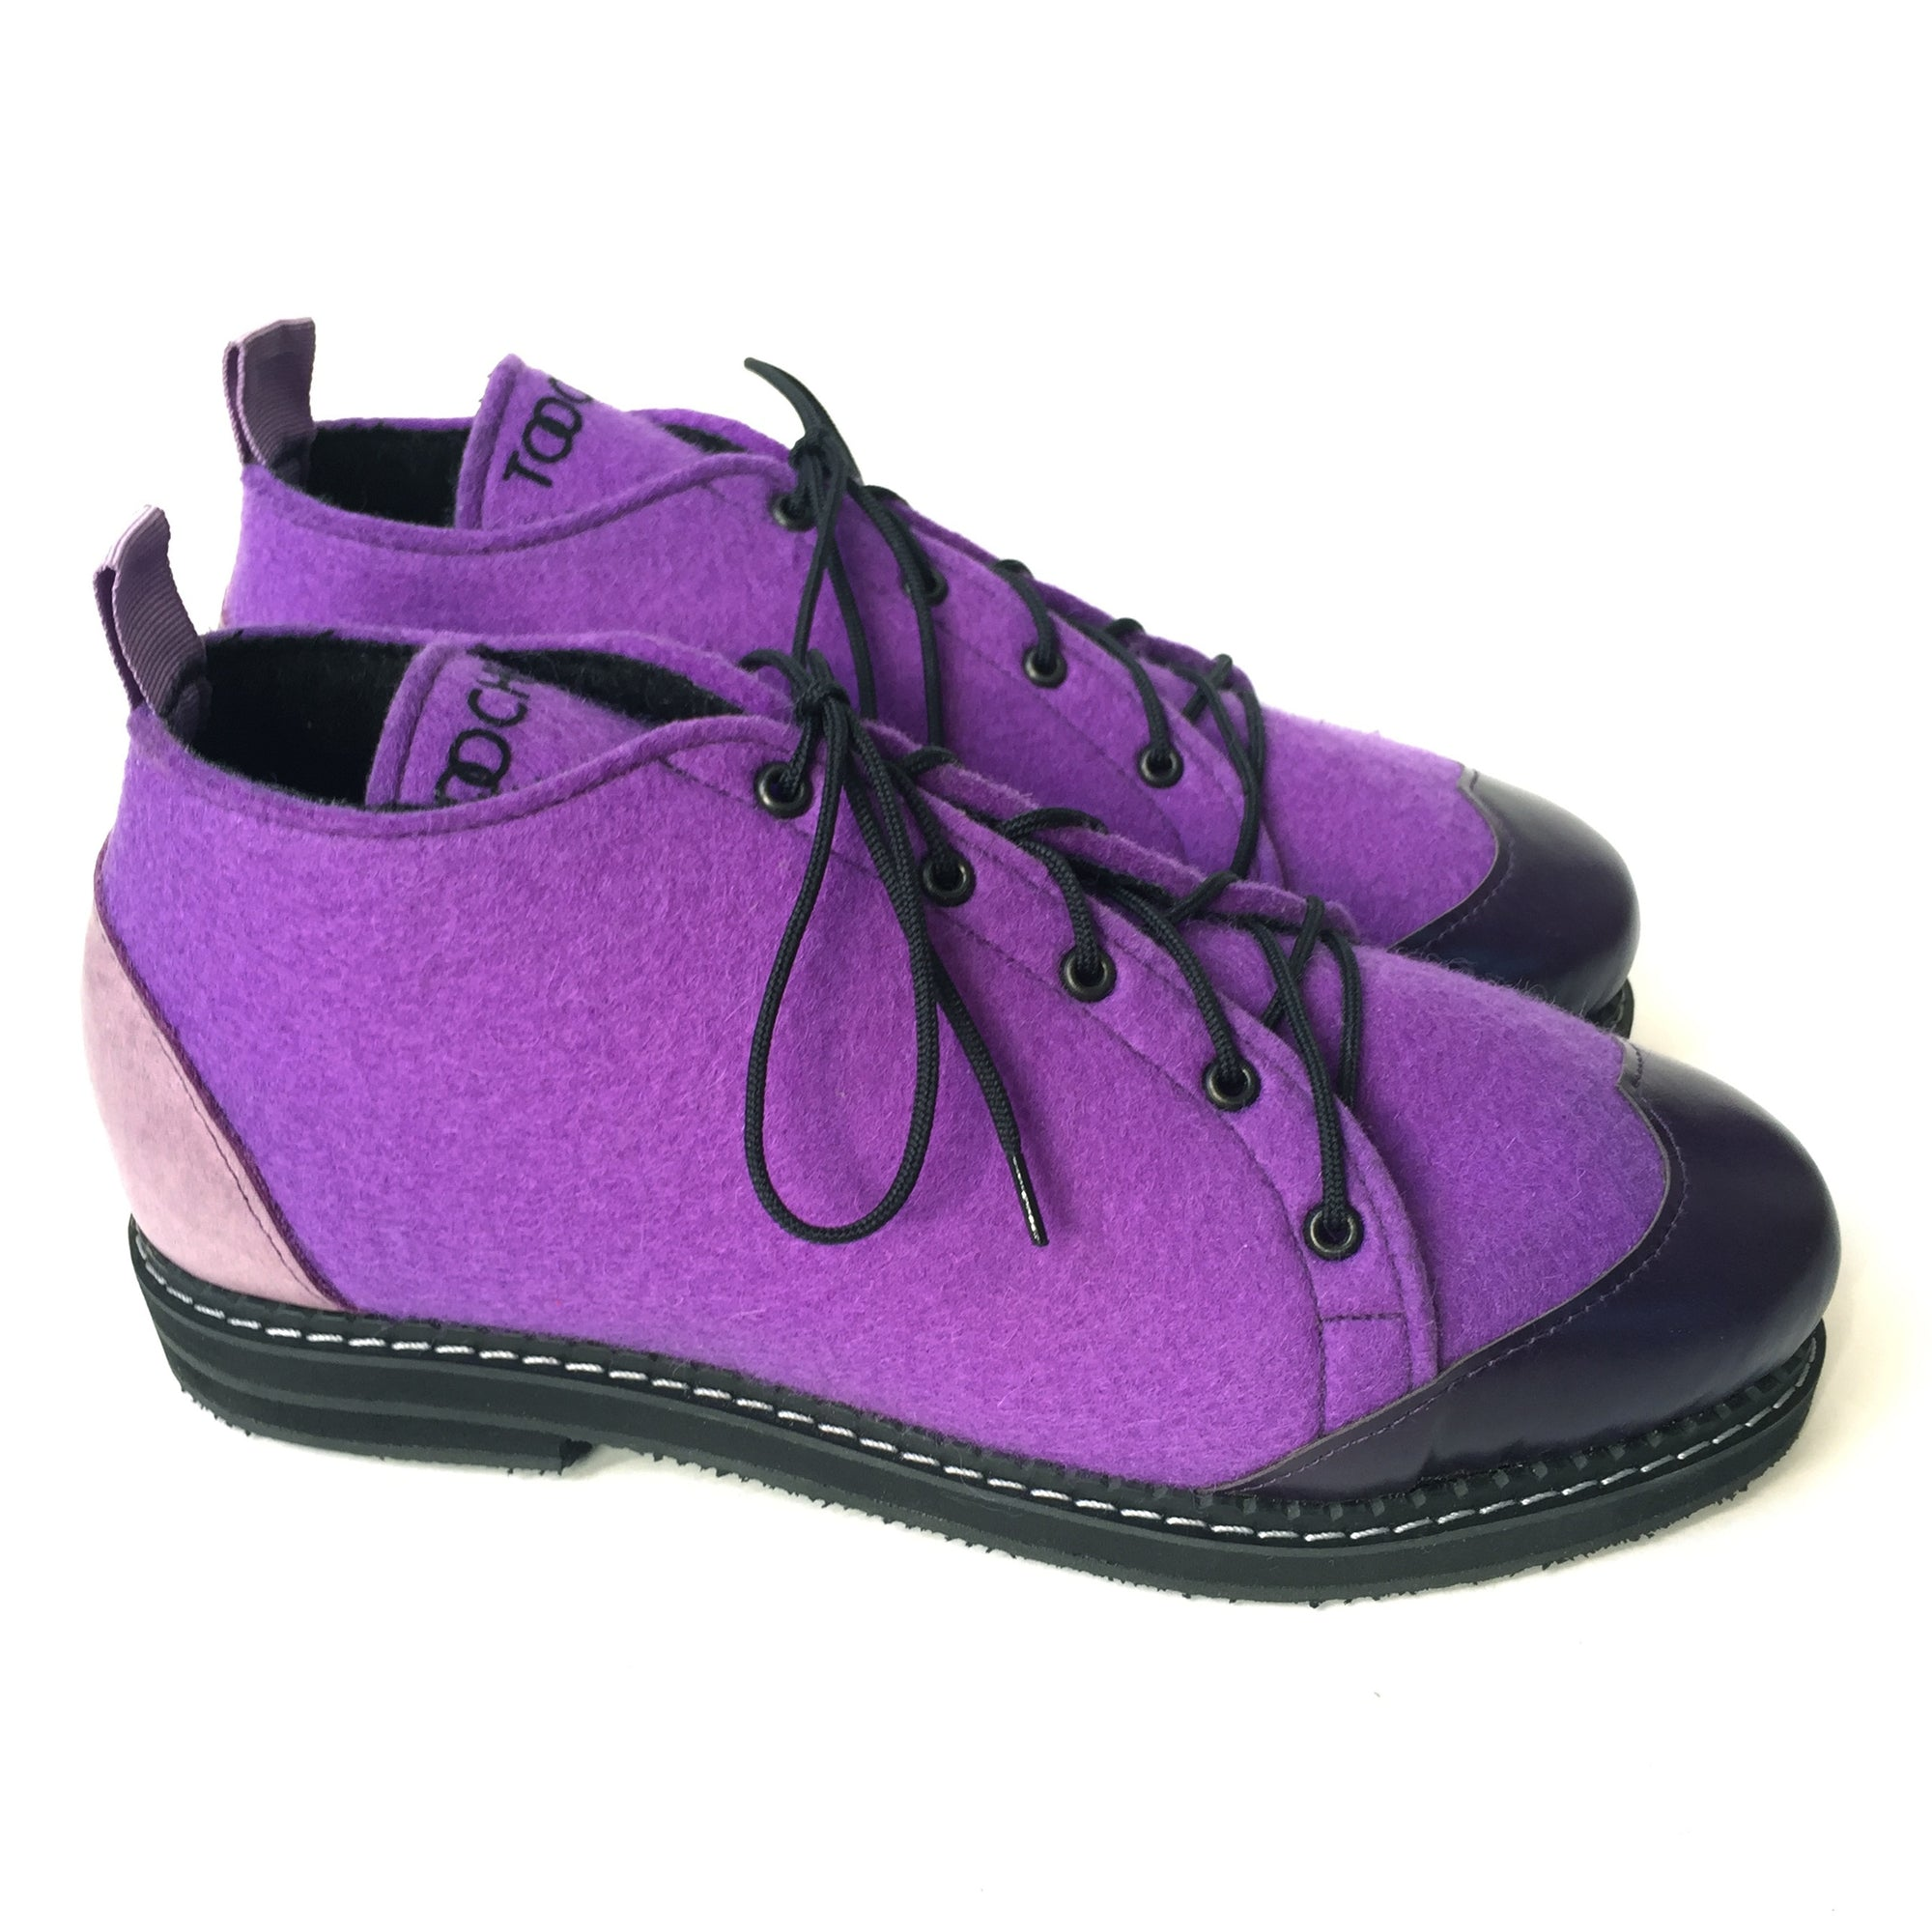 BLUEBERRY shoes